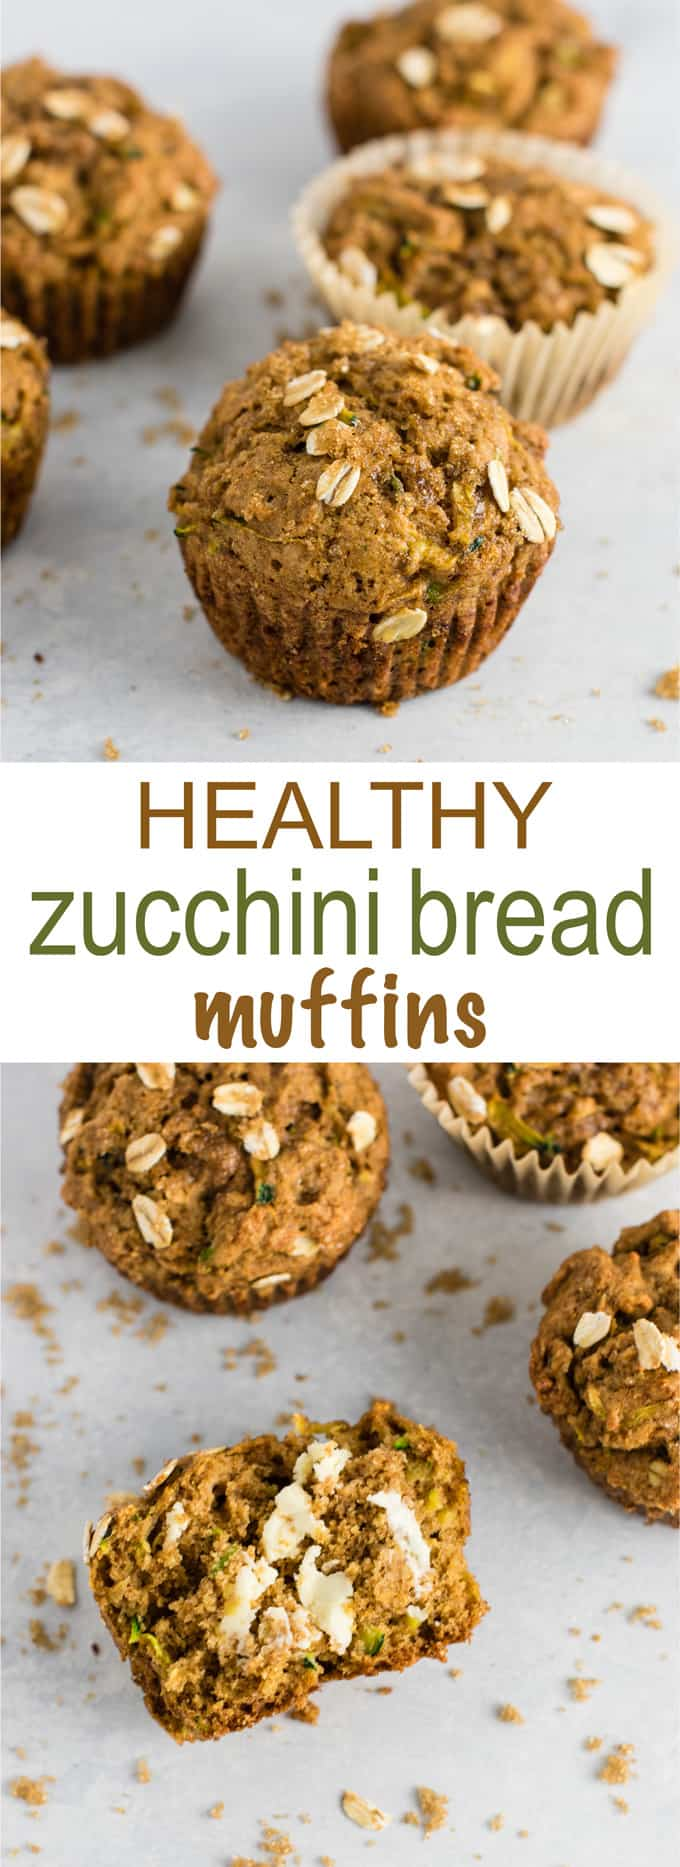 Brown Sugar Healthy Zucchini Bread Muffins recipe - melt in your mouth good! Perfect for using up all that zucchini! #zucchinibreadmuffins #healthy #healthymuffins #breakfast #vegetarian #healthybreakfast